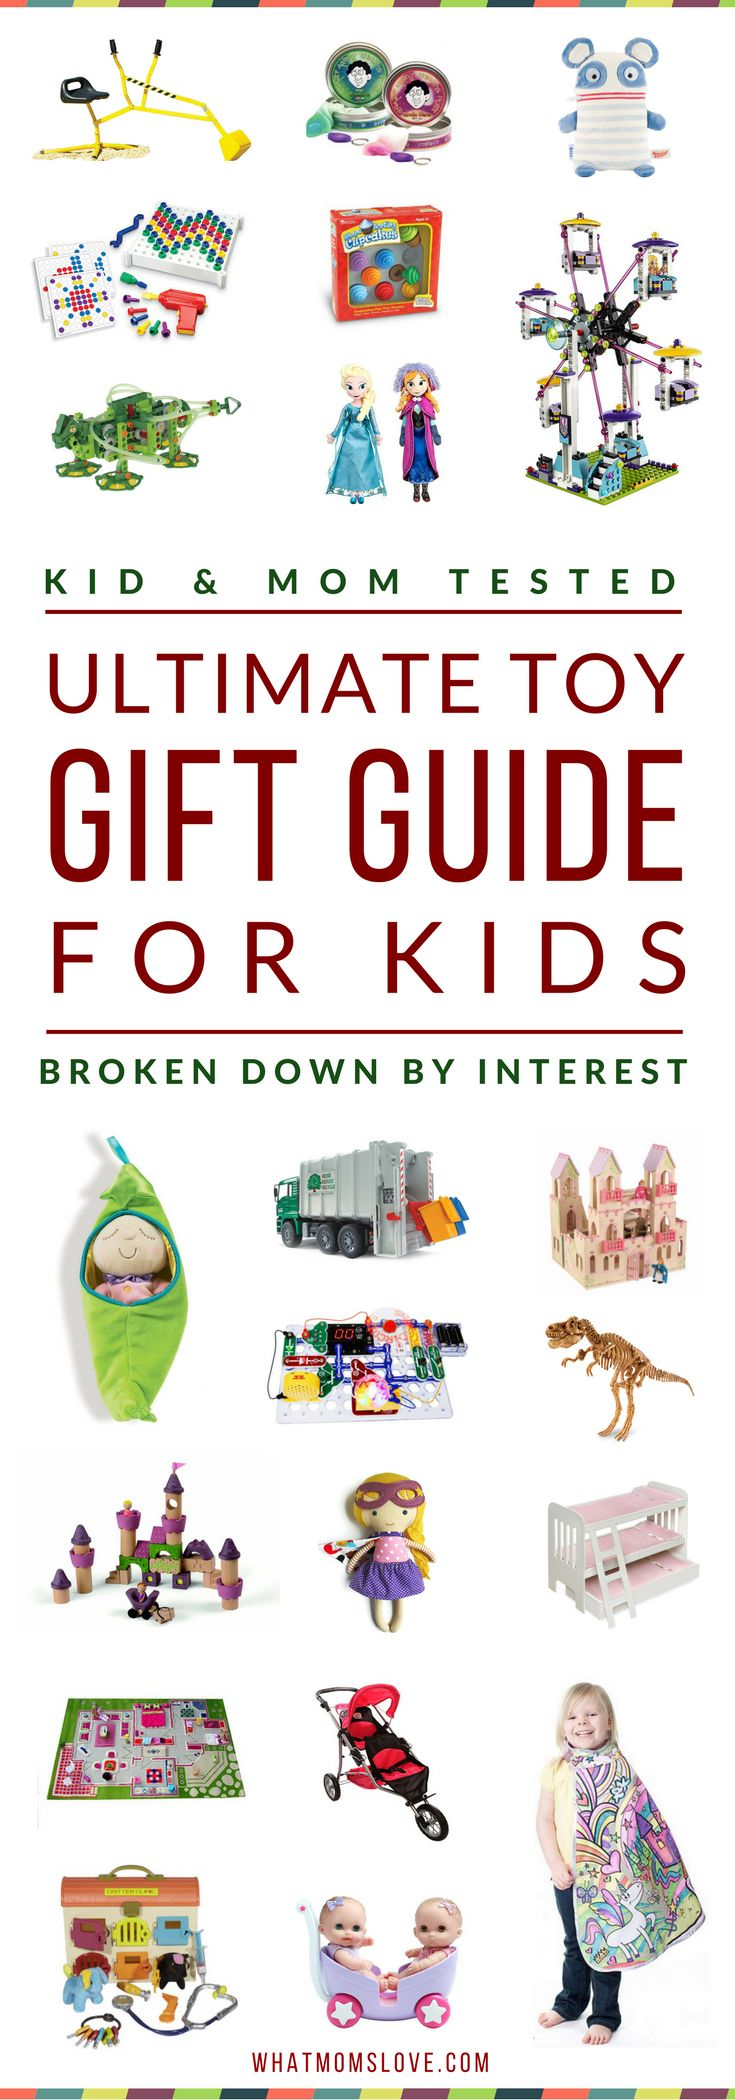 Massive Toy Gift Guide For Kids | Looking for a great gift for your child? Our guides feature only the best products that have been kid-tested & mom approved - the ones they'll return to play with over & over again. Based on interests like: Dolls, Princesses, Car/Trucks, Building, etc. Perfect for toddlers to tweens, girls or boys, for Holidays, birthdays and special occasions. Click for fun present ideas with specific product recommendations, or pin for later | from What Moms Love